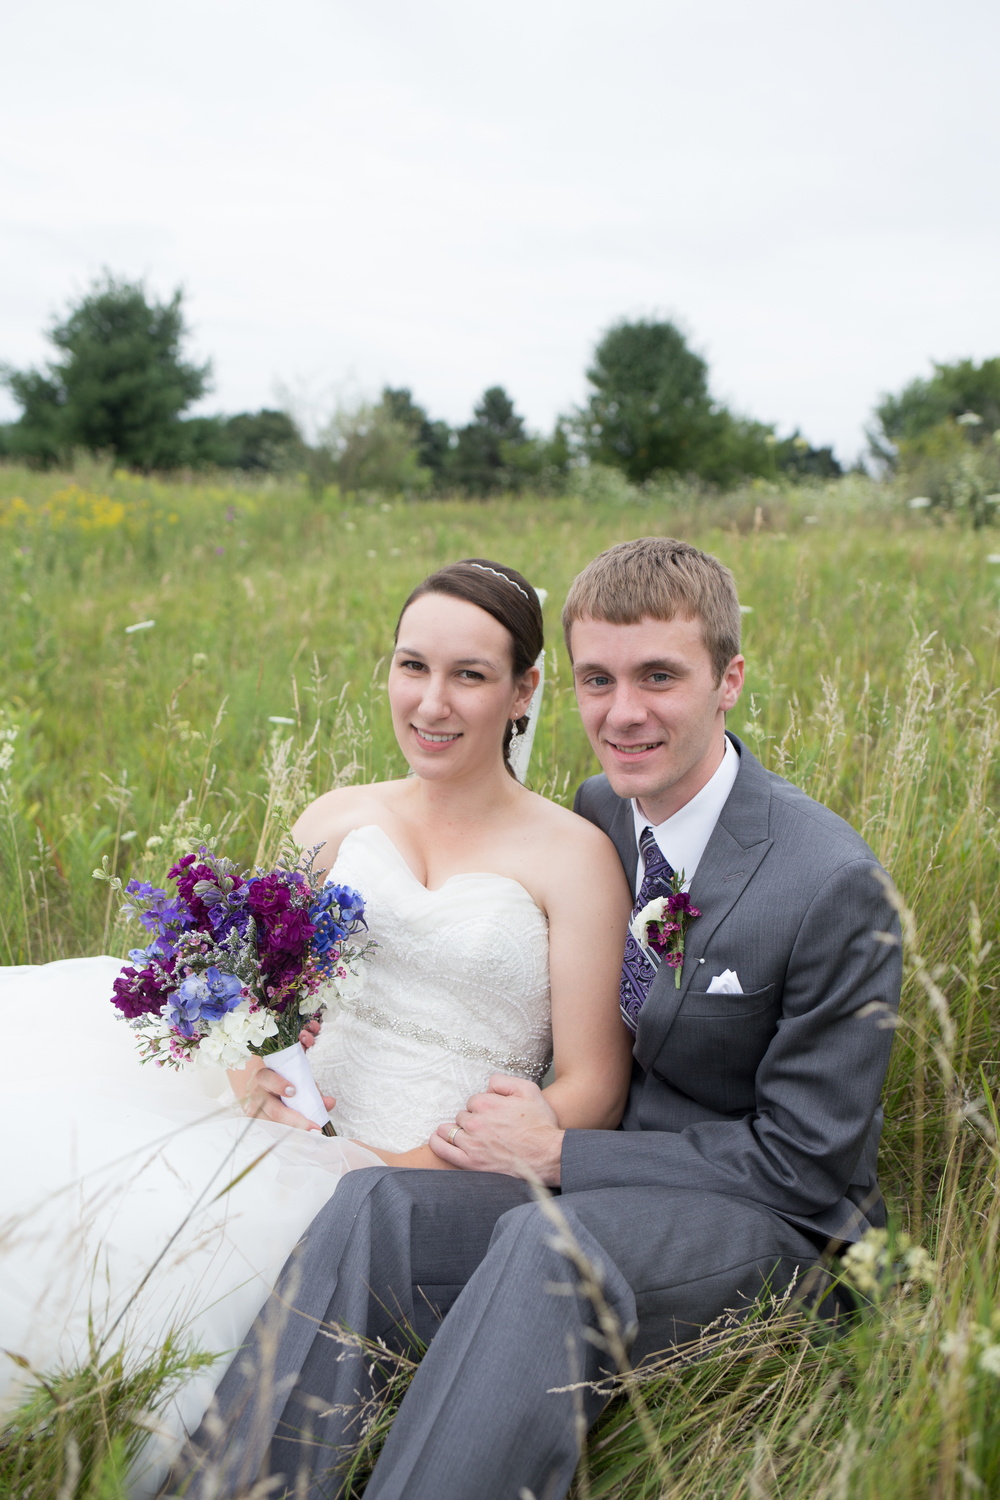 Appleton Wisconsin Wedding Photographer -Whit Meza Photography